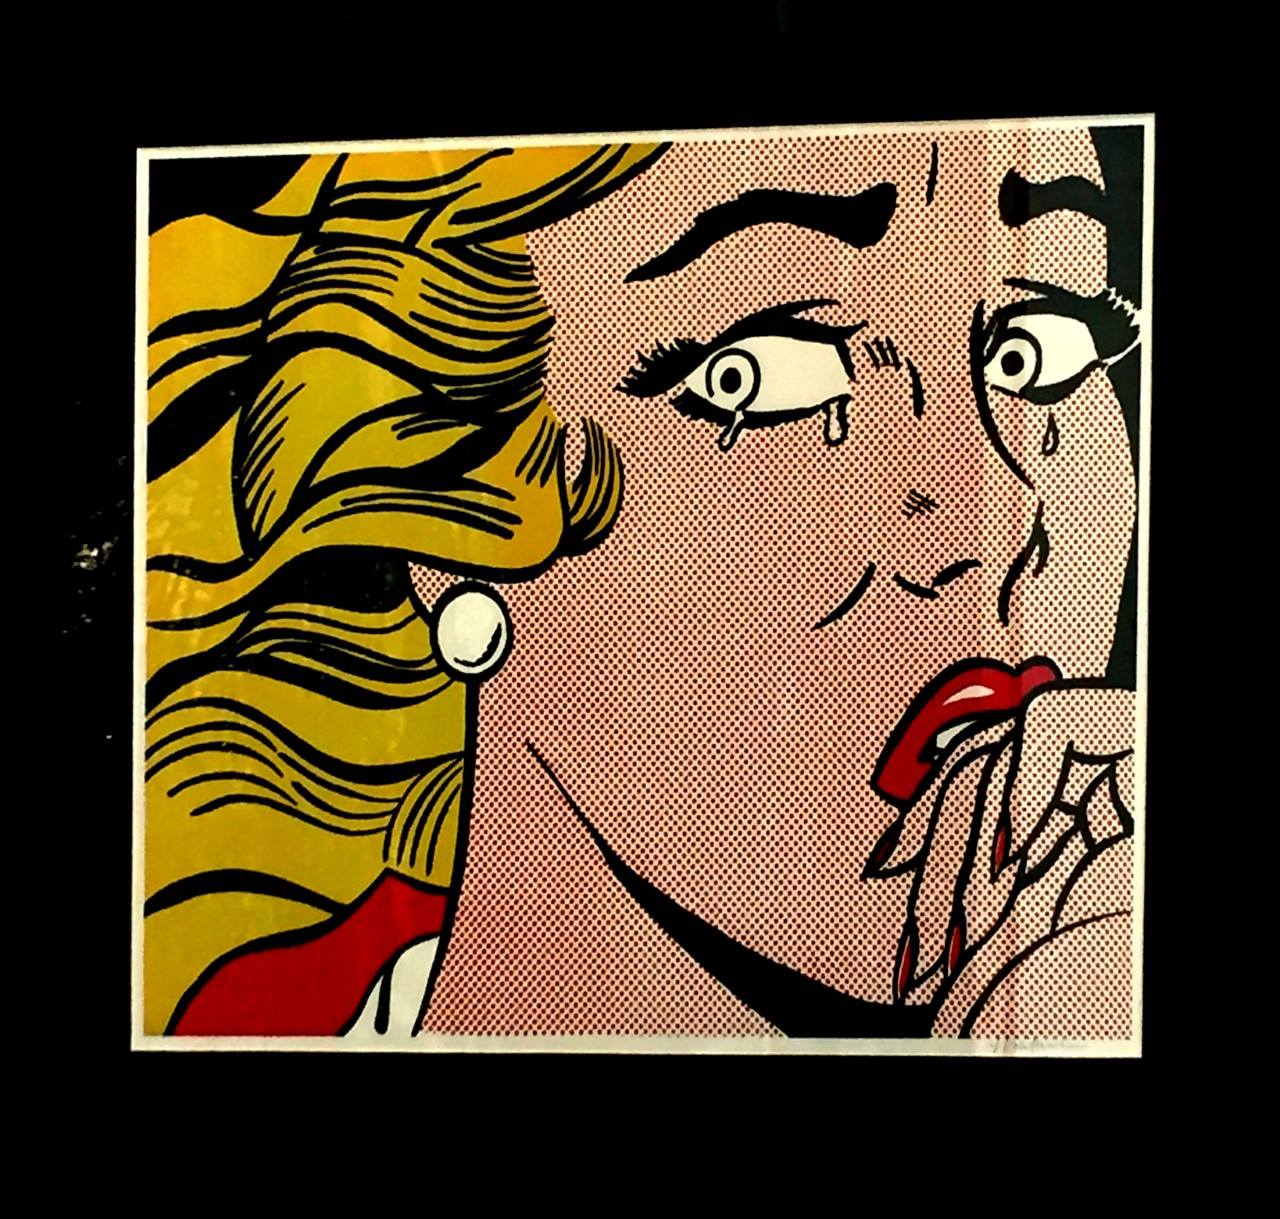 Roy Linchtenstein, Crying Girl, litografia su carta firmata, 60x45 cm